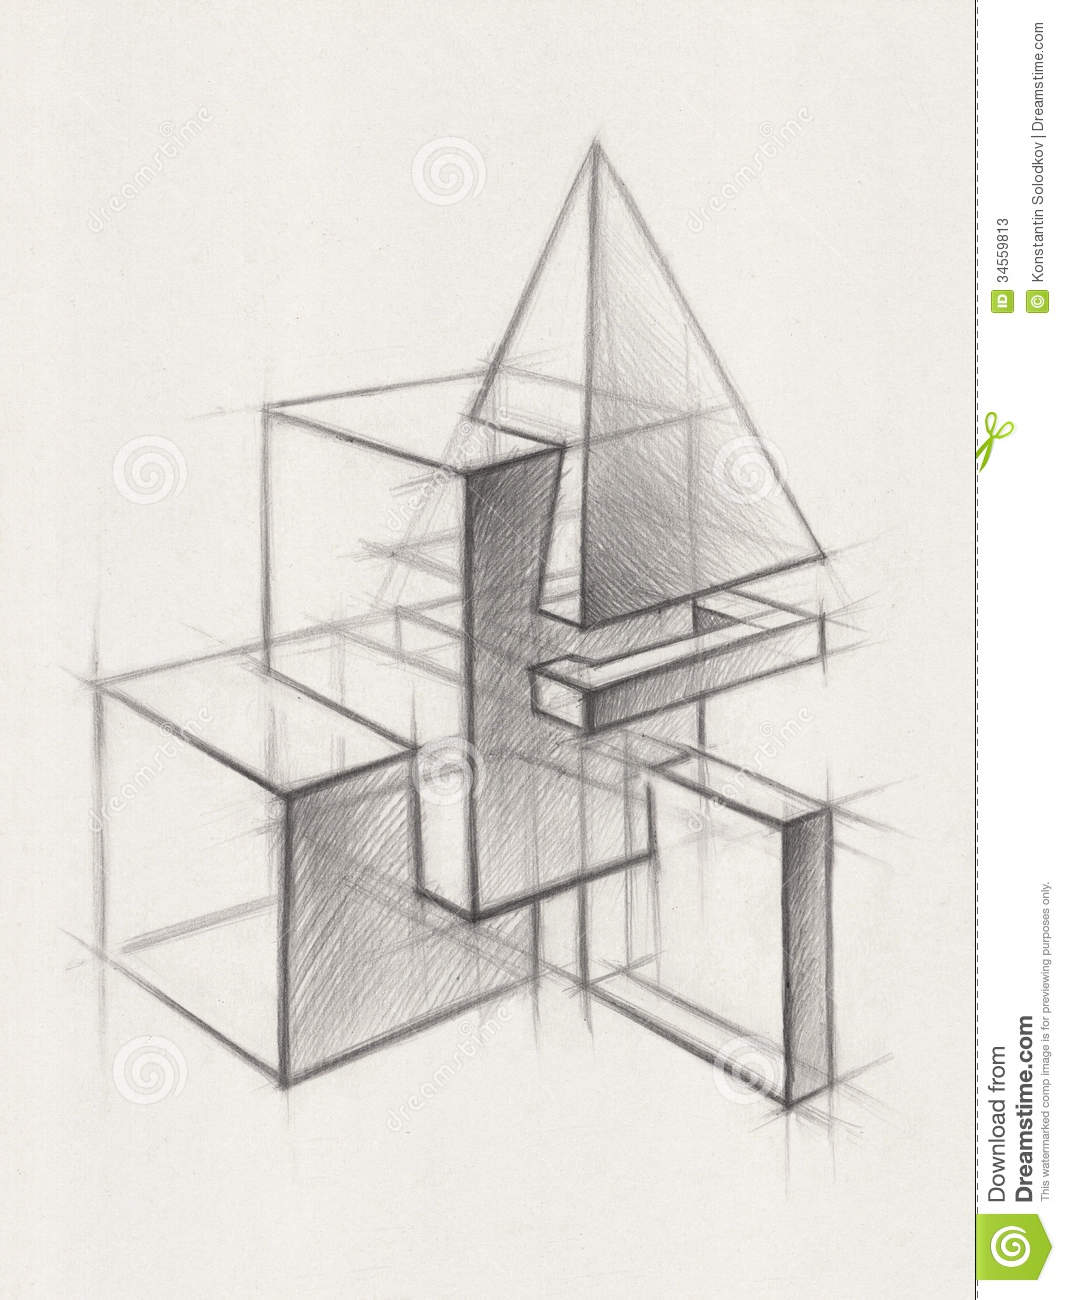 Solid Geometric Shapes Stock Illustration Illustration Of